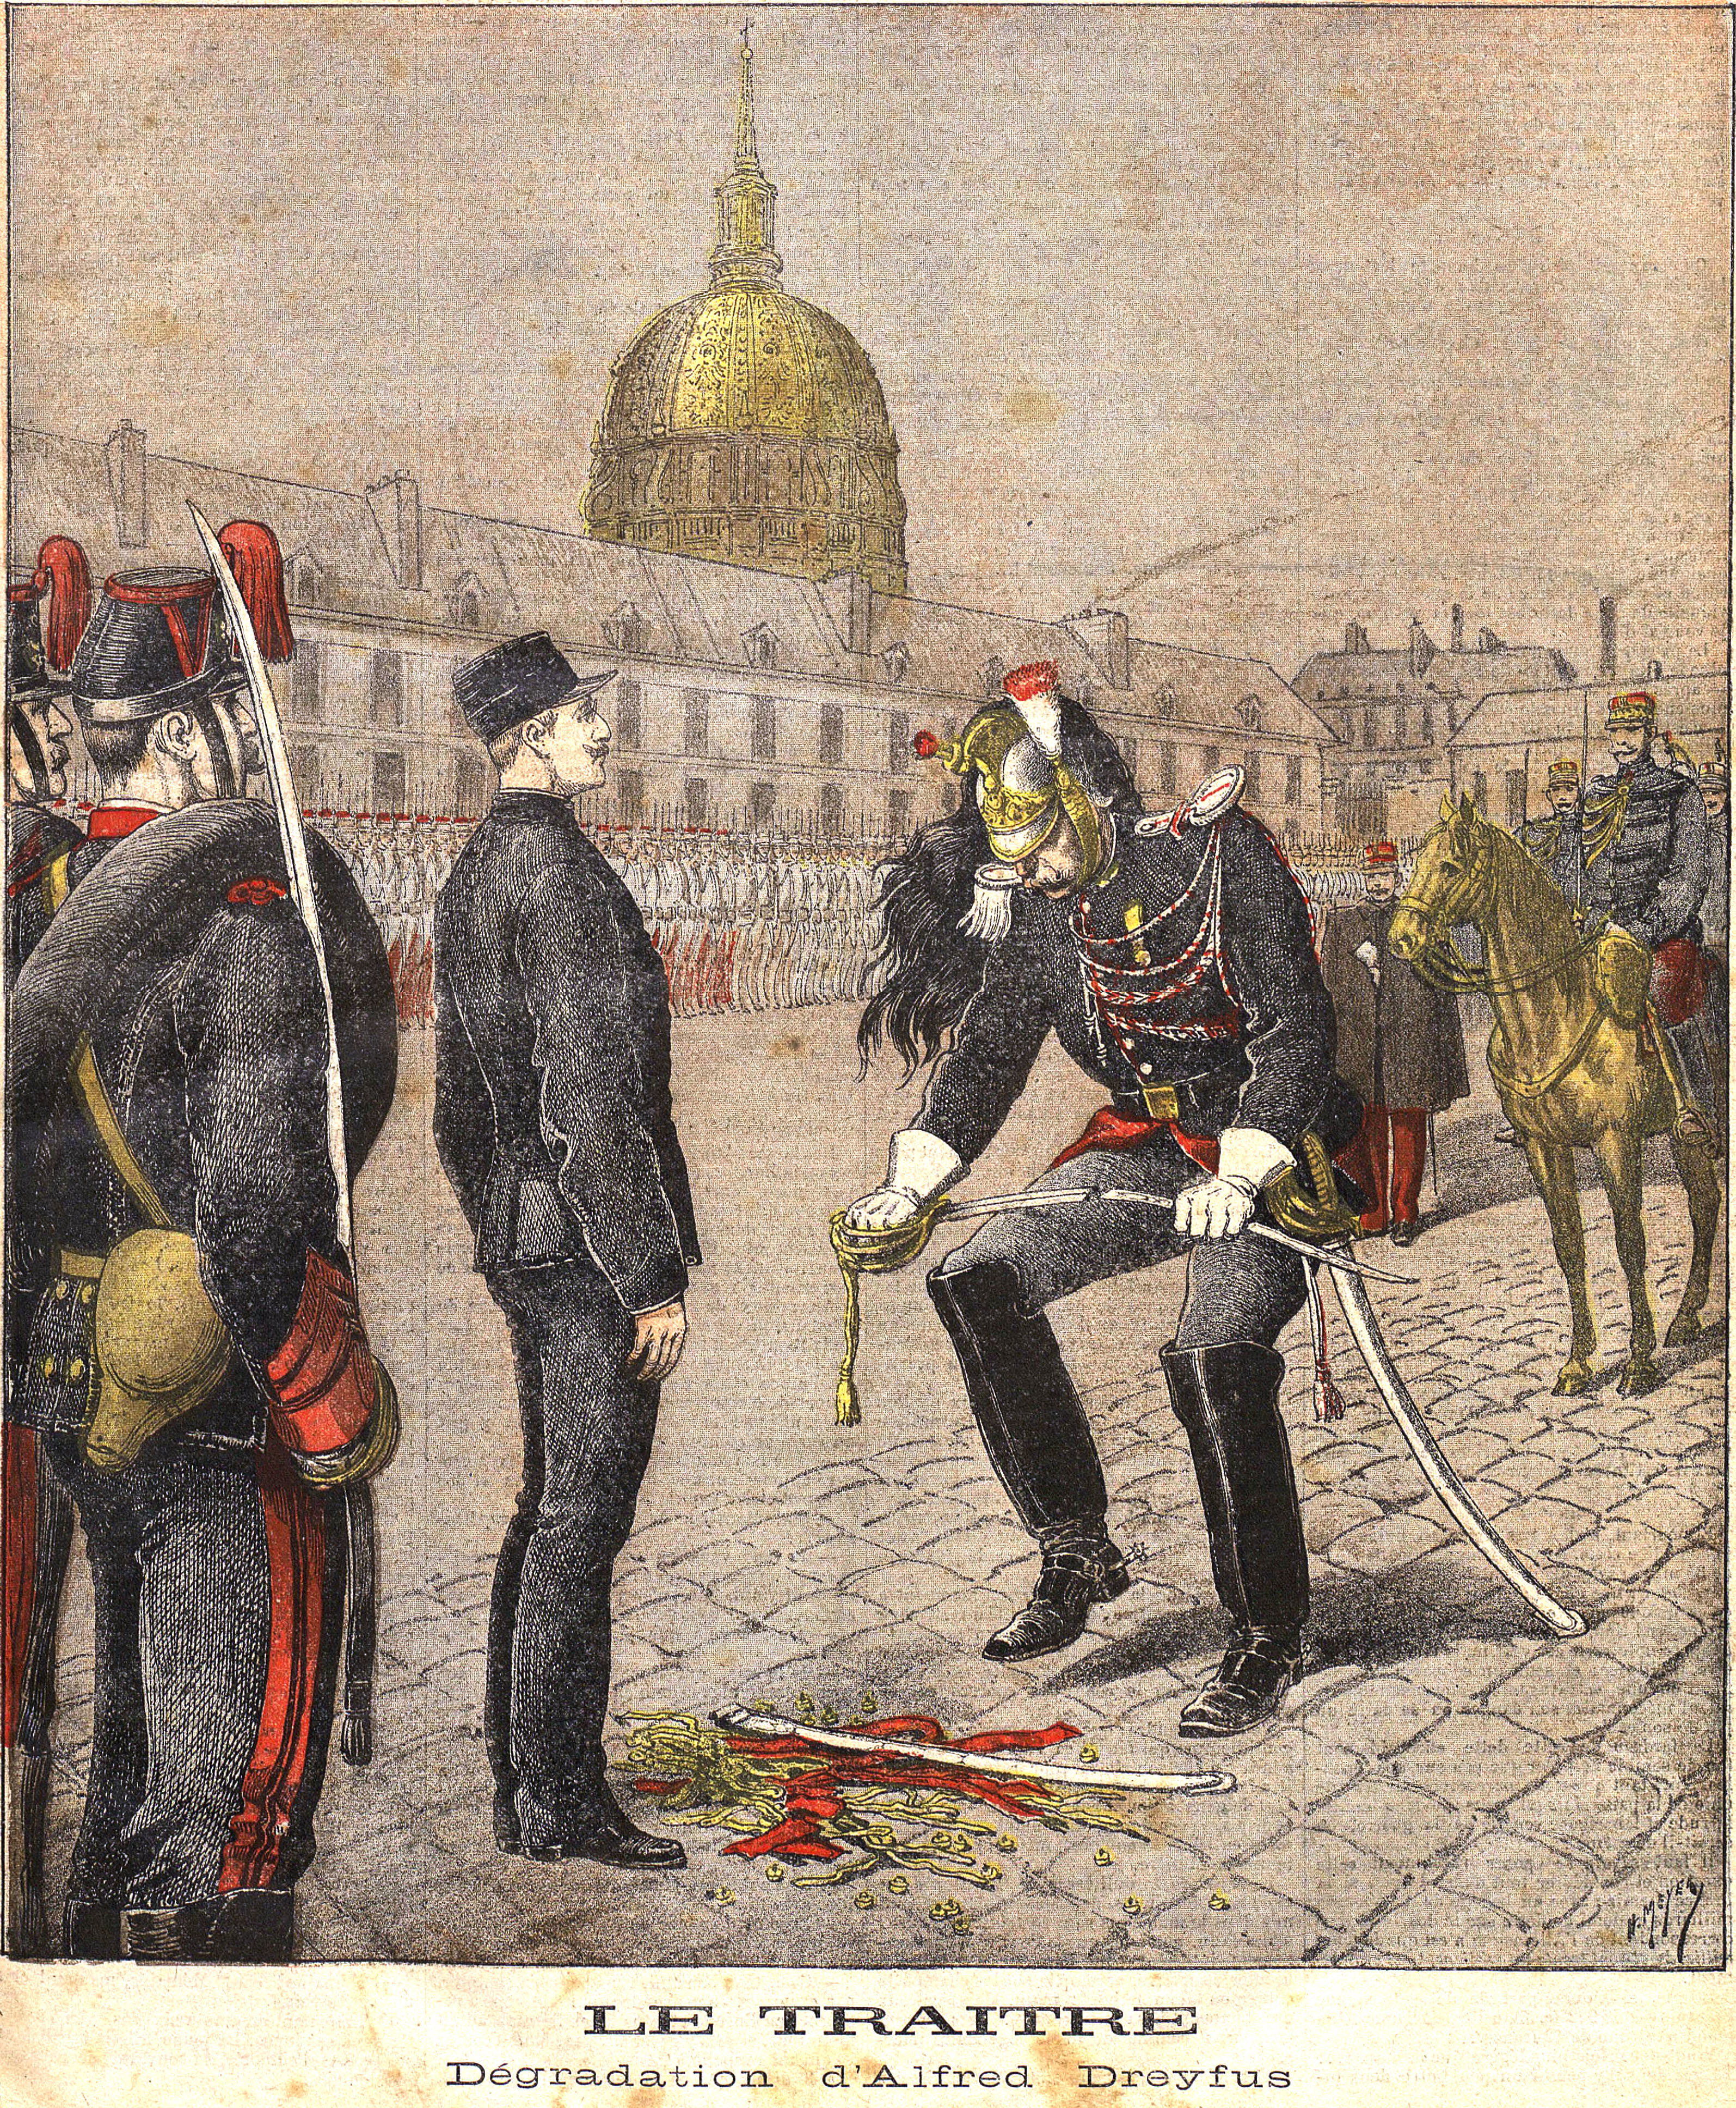 the dreyfus affair If they haven't been ordered to convict him, he will be acquitted this evening at nine o'clock on monday morning, october 15,1894, a french artillery officer serving as a trainee with the army's general staff reported to the ministry of war building on rue saint-dominique, in the aristocratic.